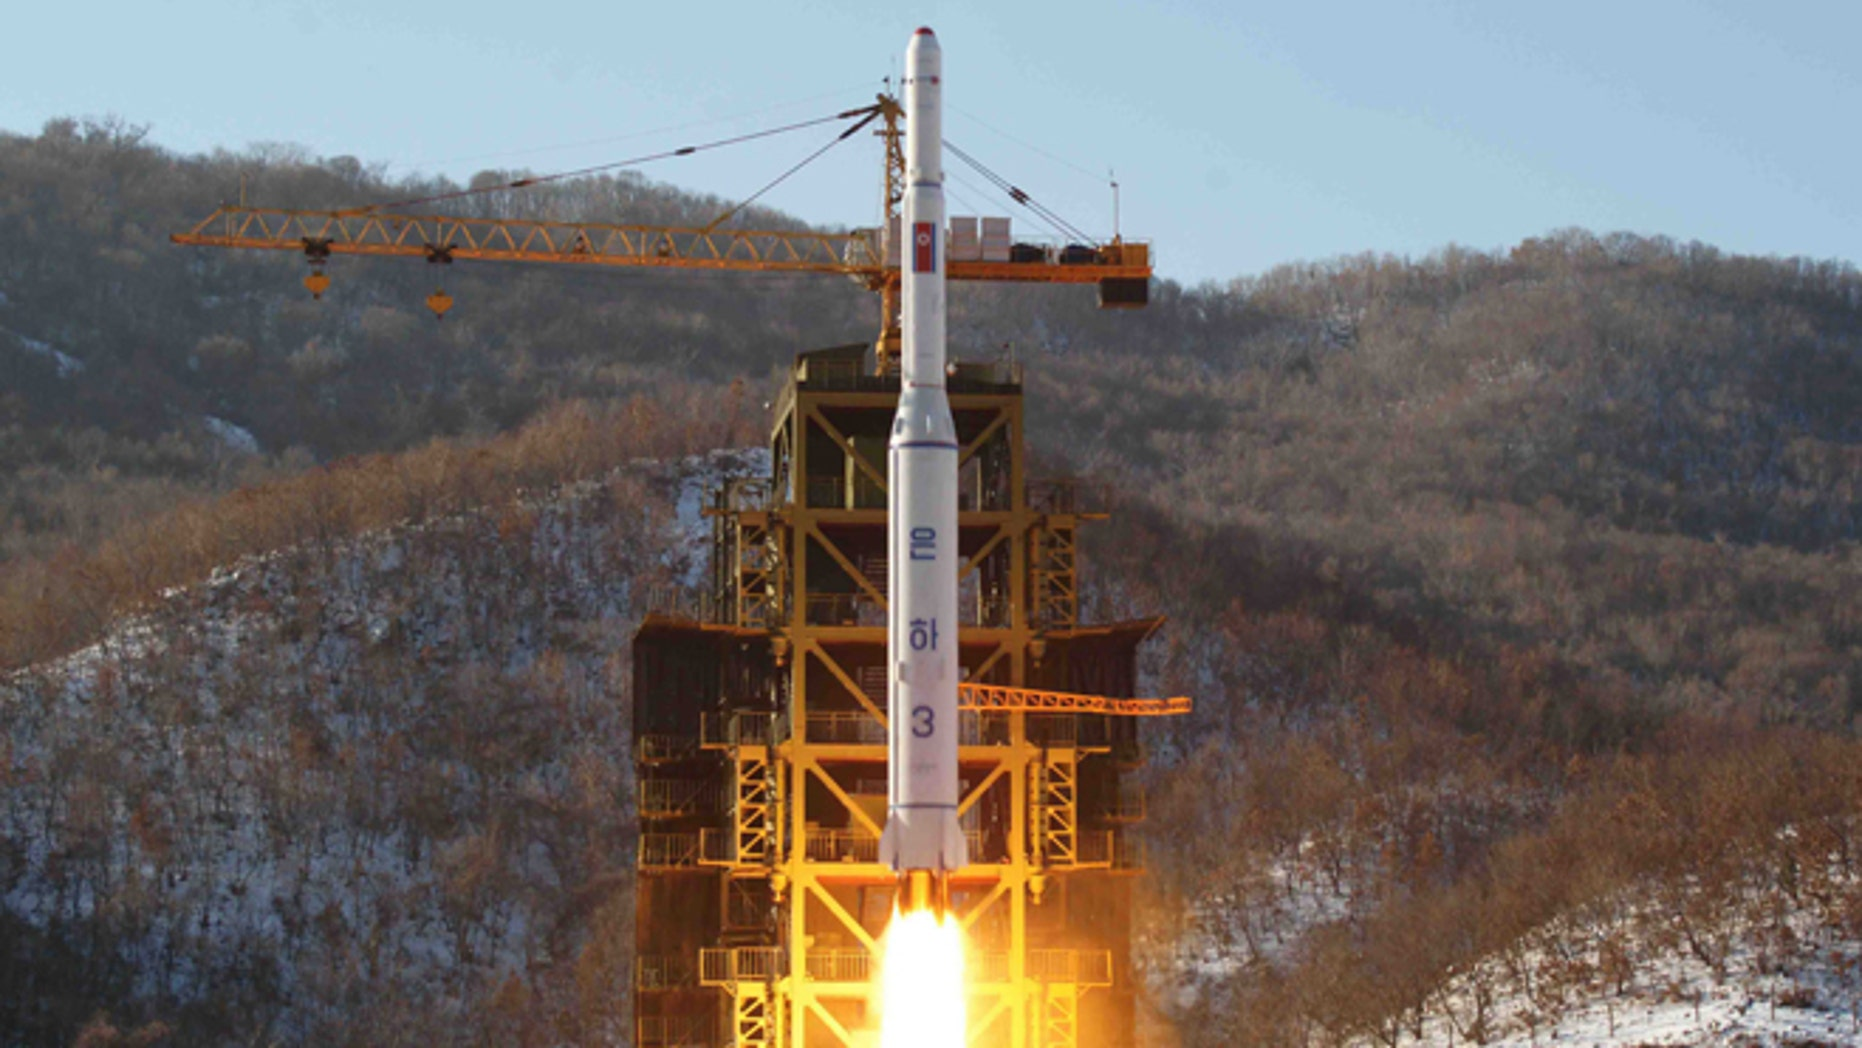 Dec. 12, 2012: In this file photo released by Korean Central News Agency, North Korea's Unha-3 rocket lifts off from the Sohae launch pad in Tongchang-ri, North Korea.